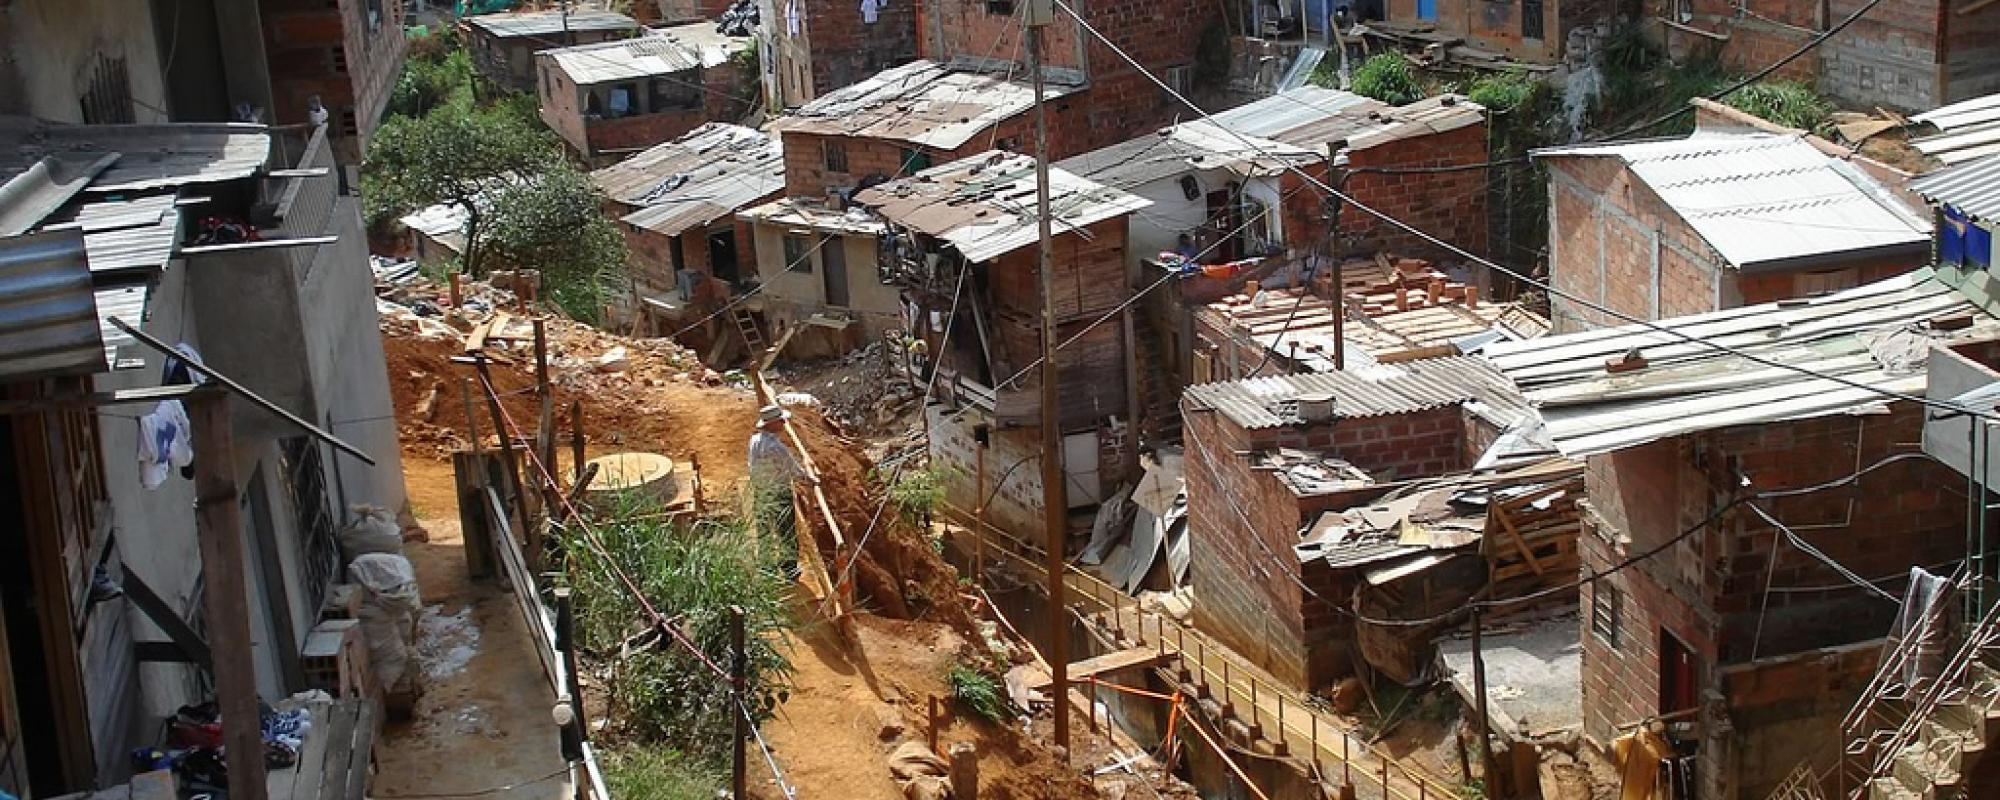 poverty area in colombia